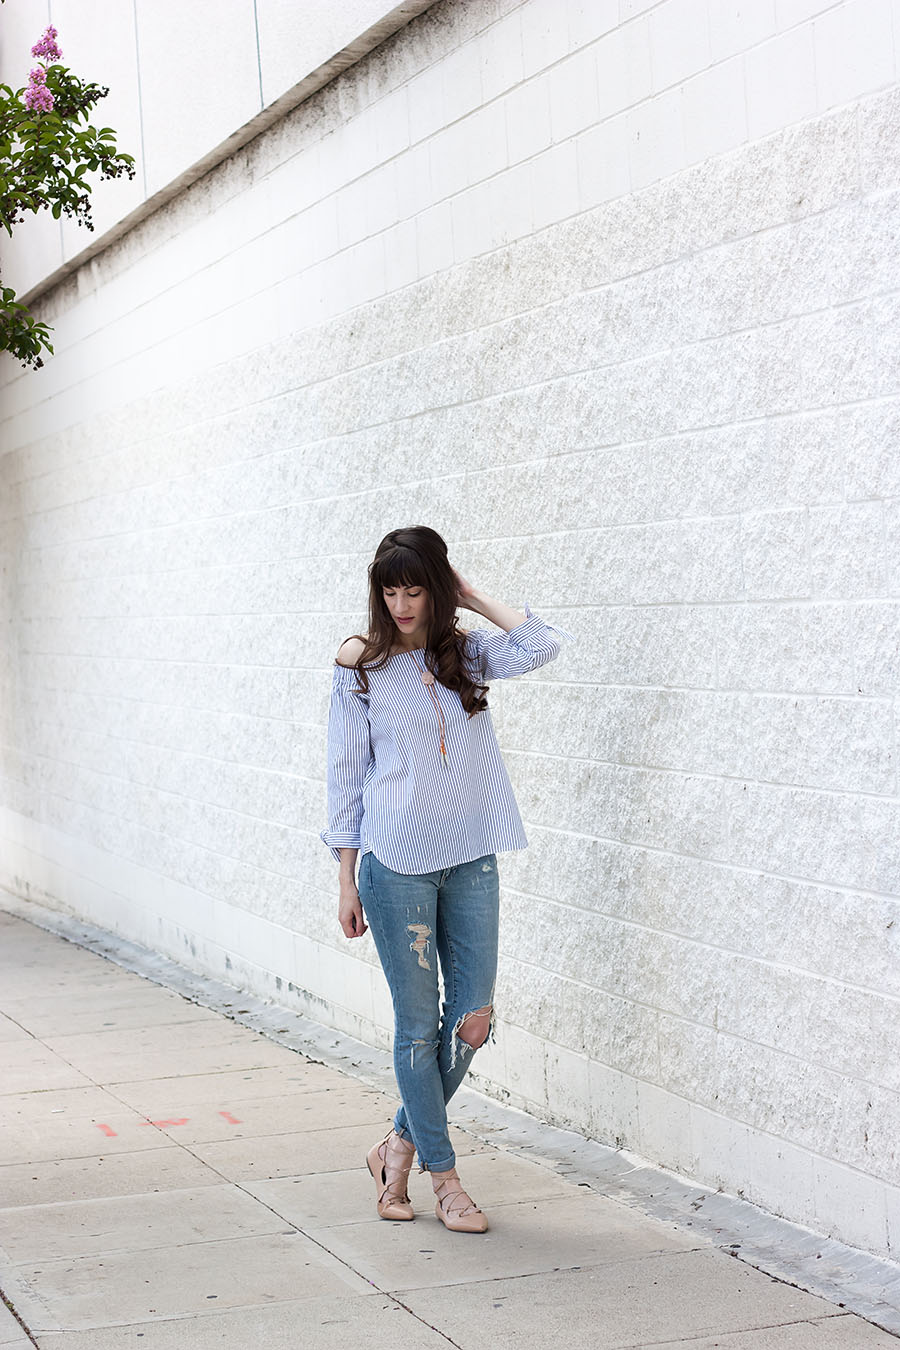 Striped Off The Shoulder Top, Ripped Skinny Jeans, Lace Up Flats, Casual Summer Outfit